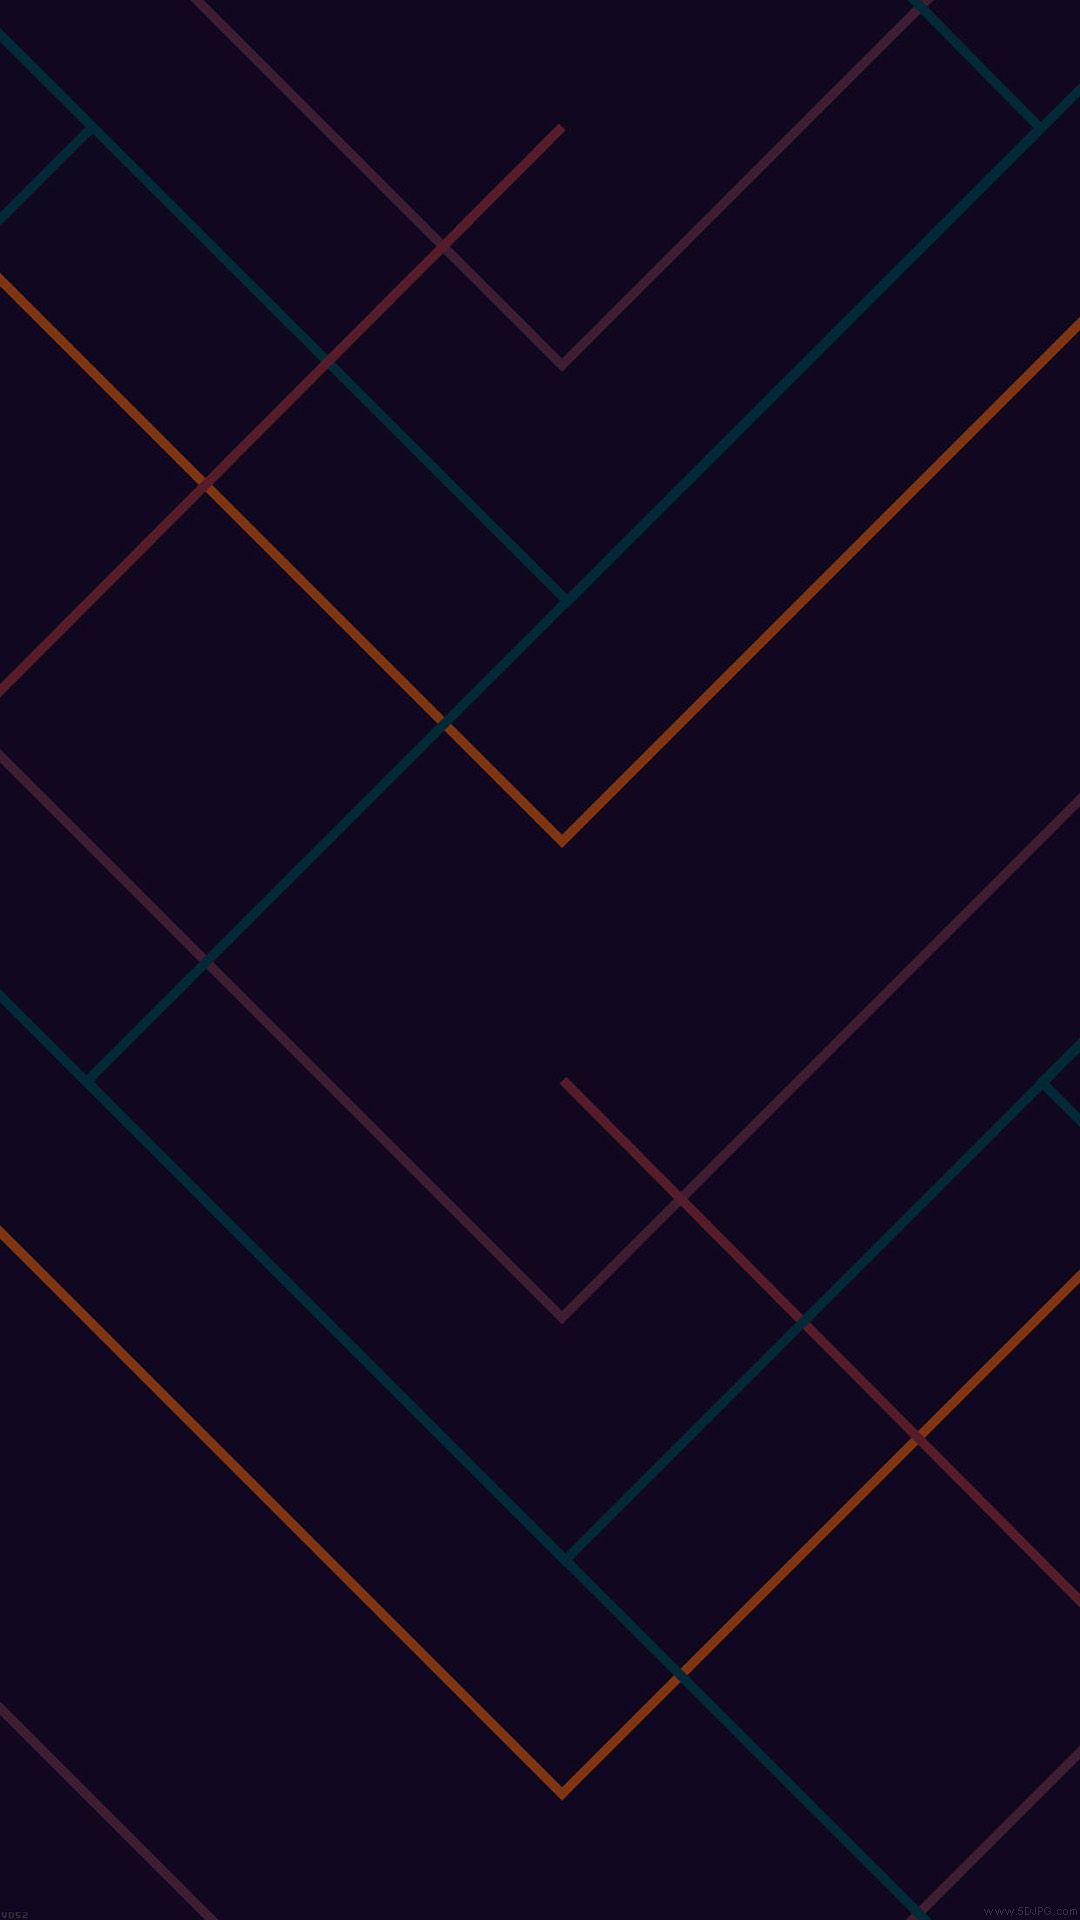 abstract dark geometric line pattern wallpaper